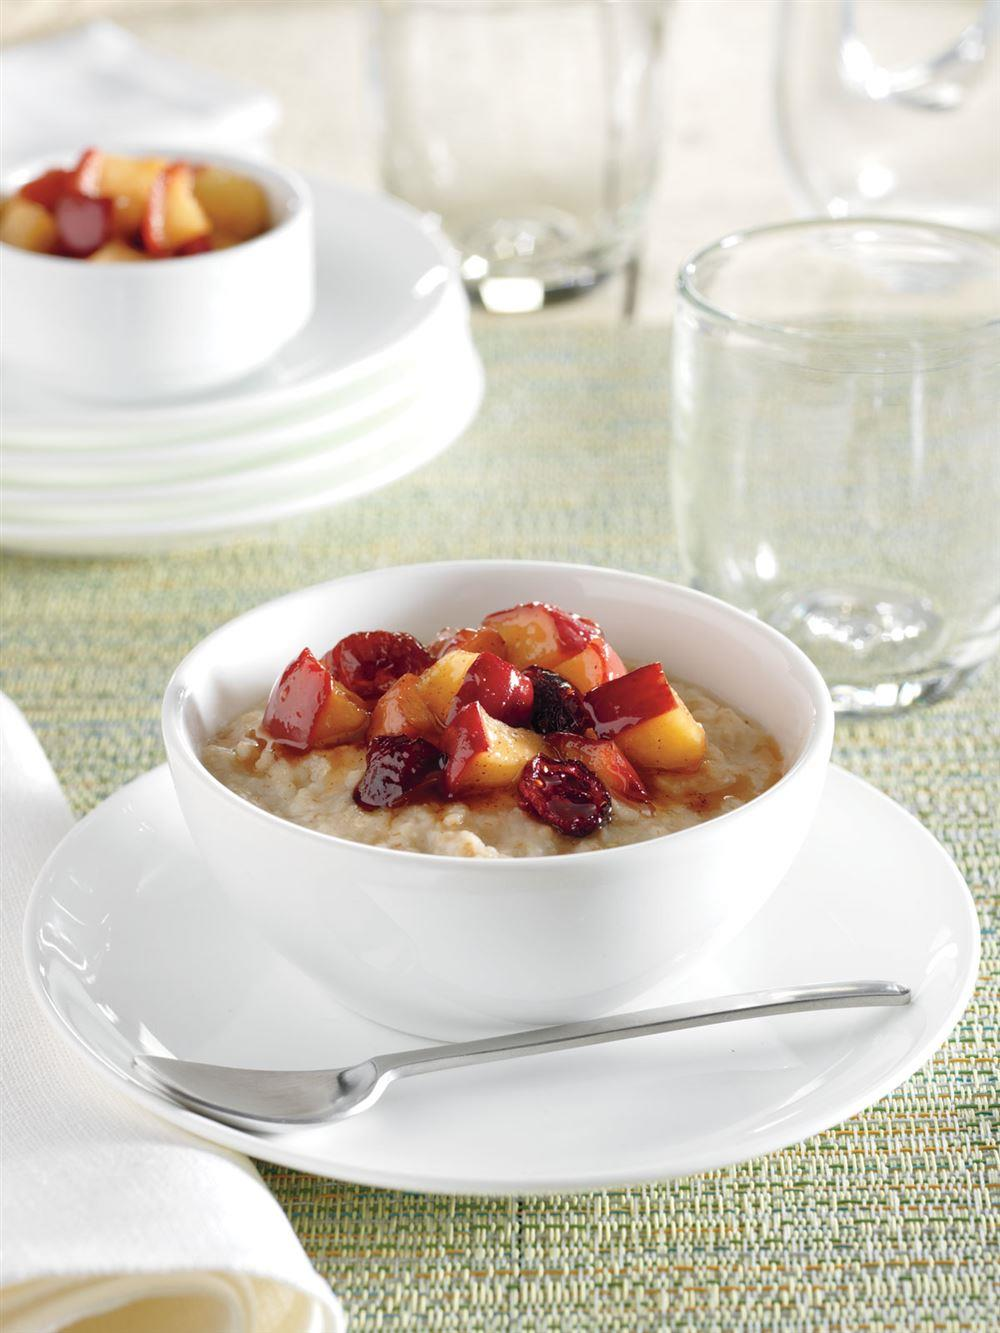 Oatmeal with Maple-Glazed Apples and Cranberries recipe from Crock-Pot® 5 Ingredients or Less cookbook (item # 2275100)